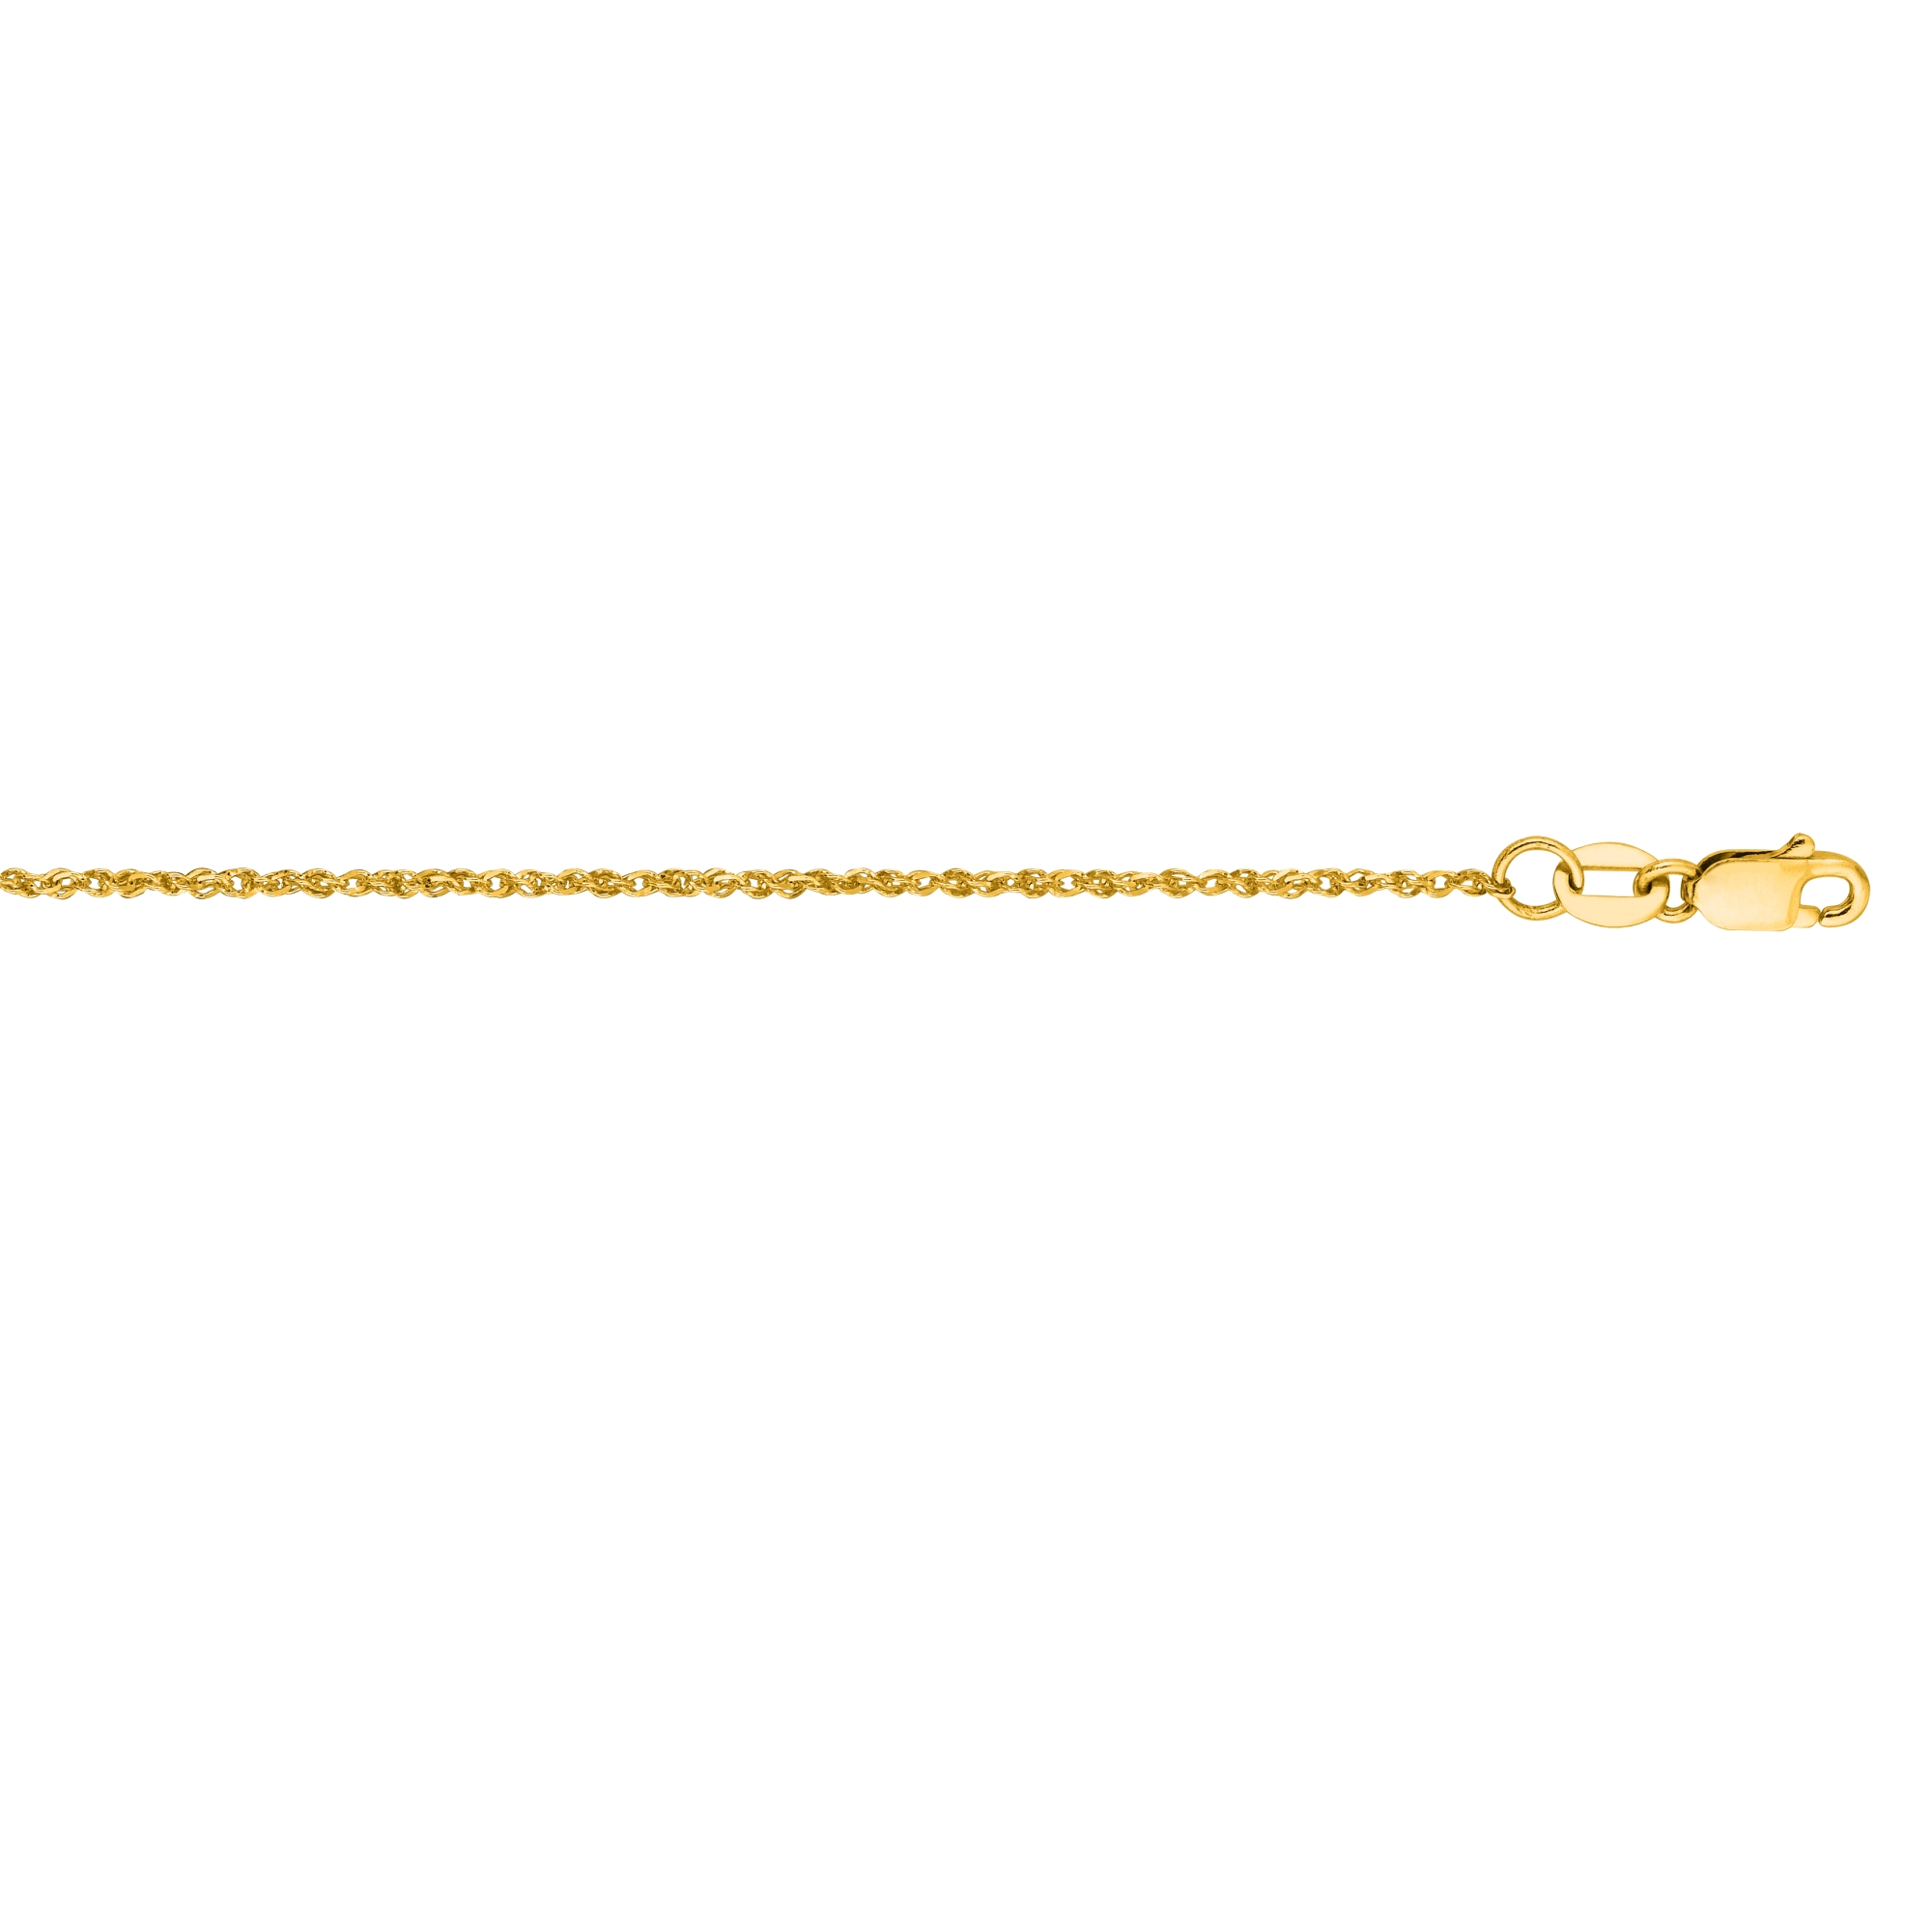 Hollow 10k Gold Ropa Chain For Men & Women 1.2mm Wide